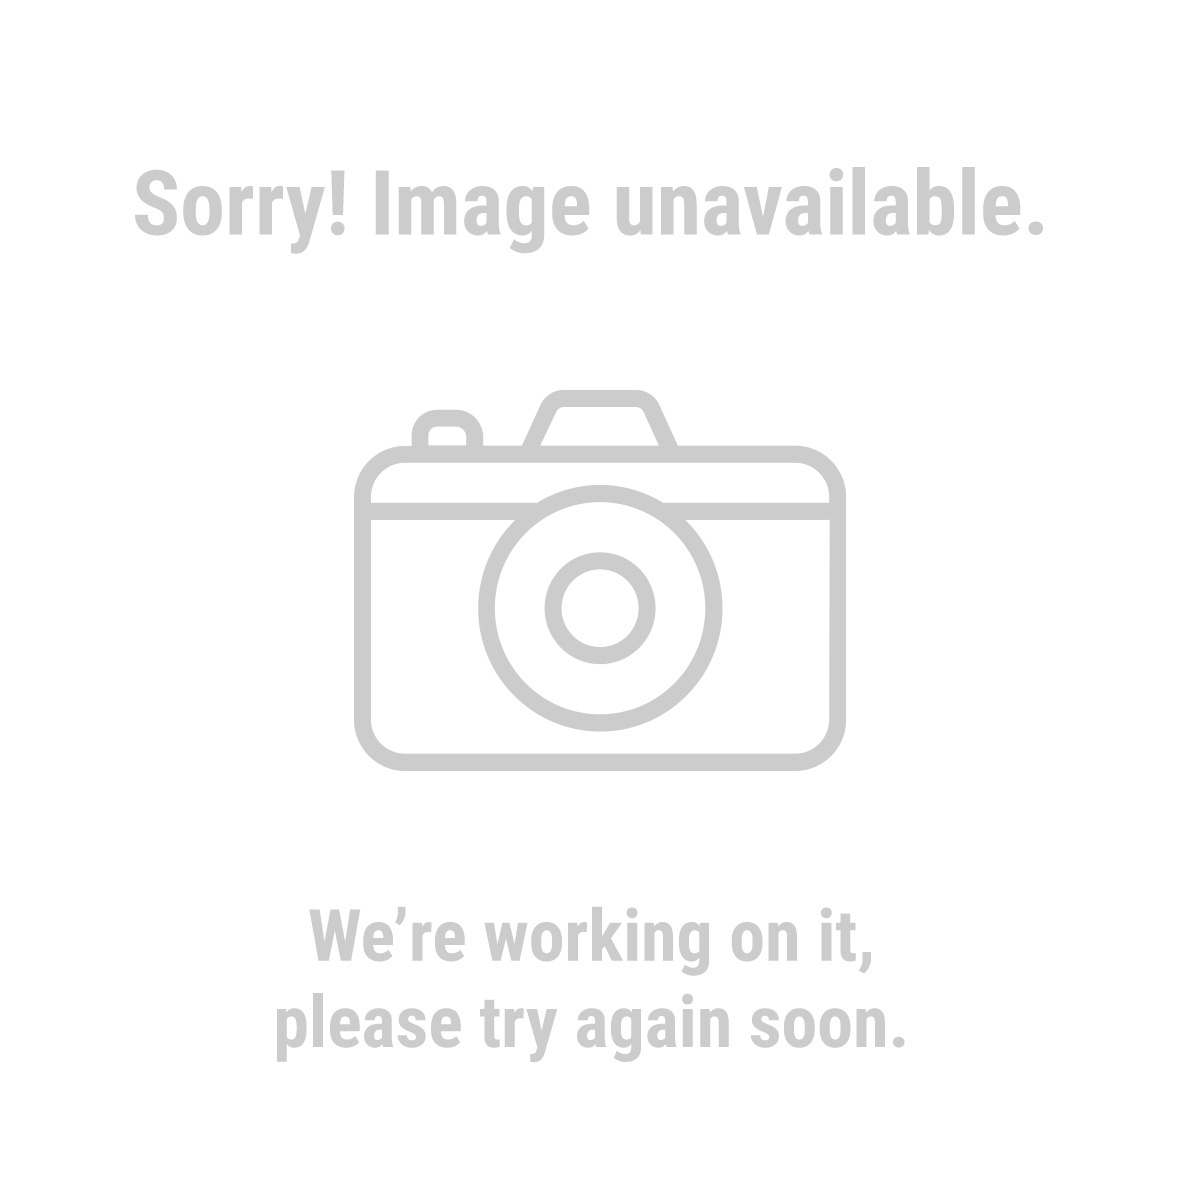 Storehouse® 62717 24 in. Heavy Duty Cable Ties 10 Pk